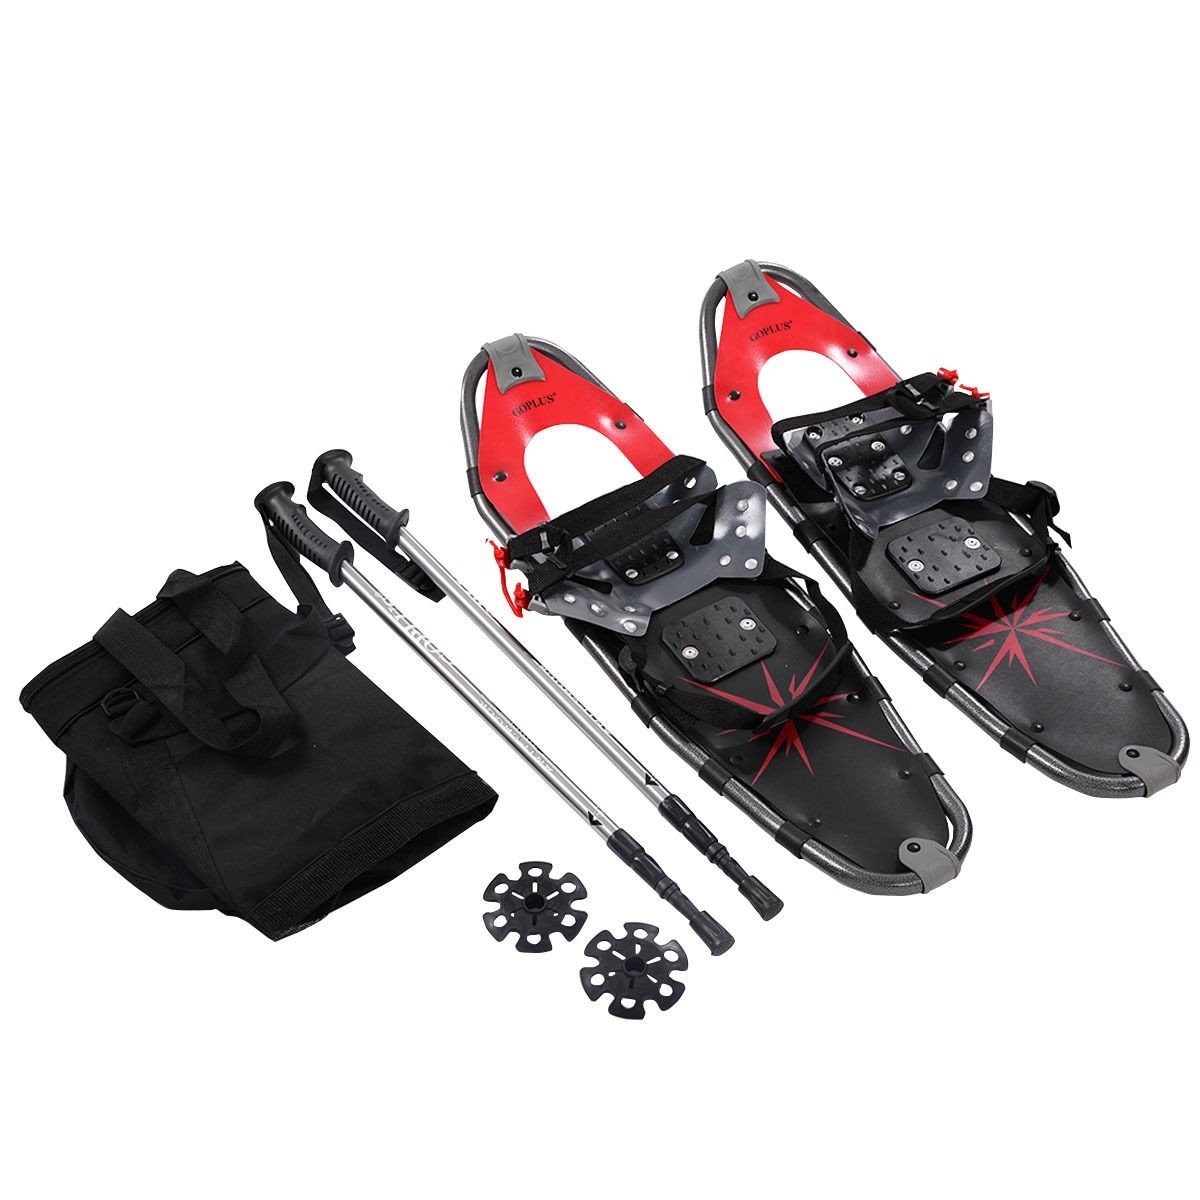 All Terrain Sports Snowshoes + Walking Poles + Free Carrying Bag by Apontus